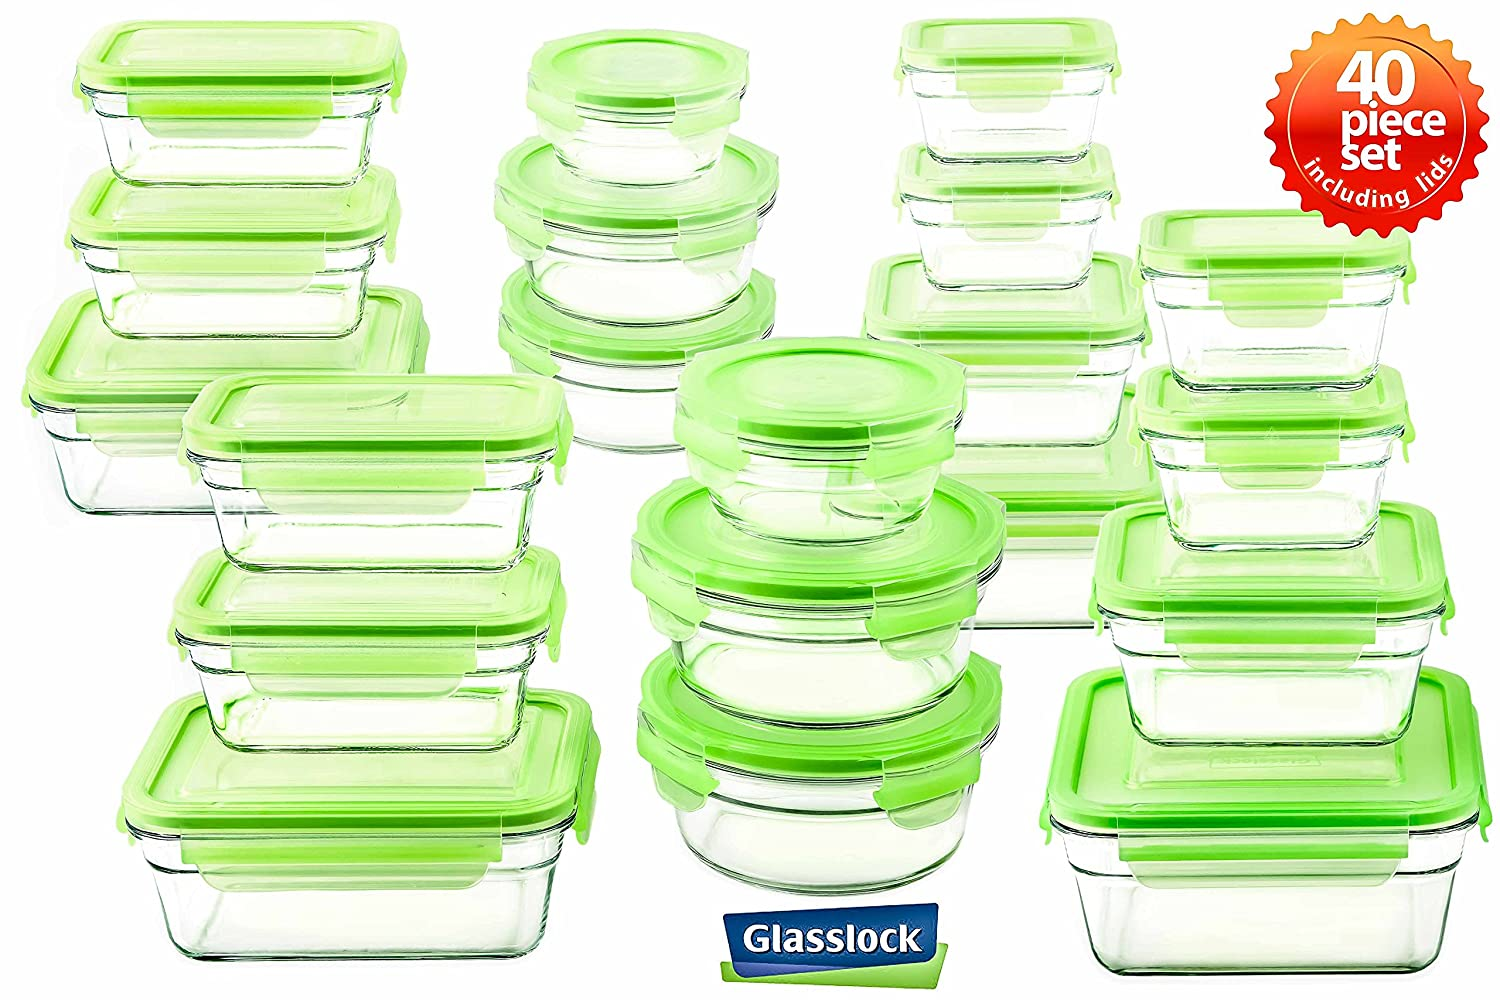 Tempered Glasslock Storage Containers 40pc set Green Lids Microwave & Oven Safe Airtight Anti Spill Proof